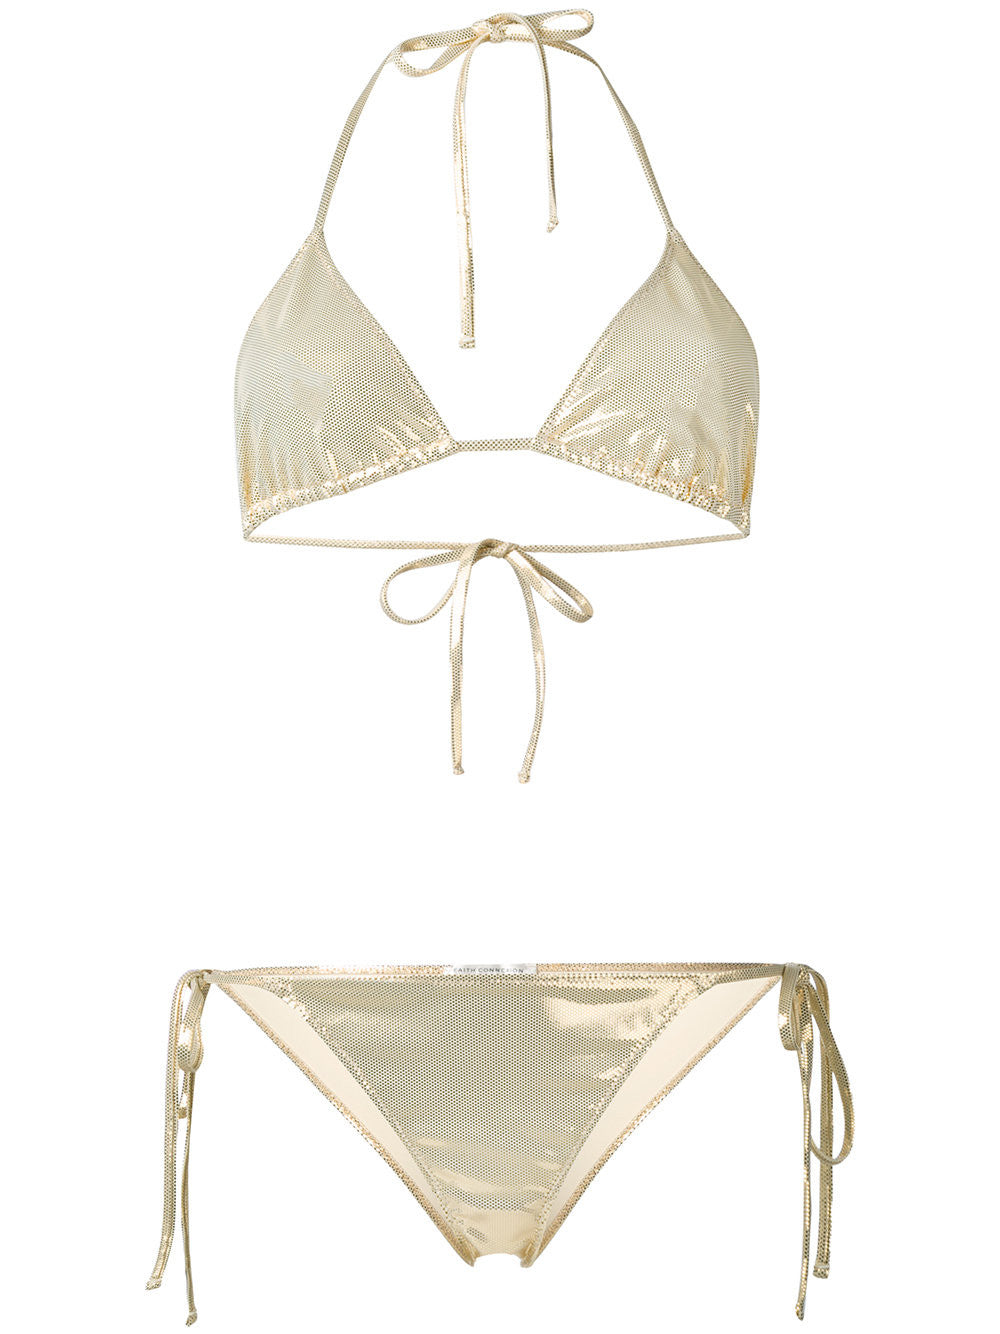 Disco Bikini - Faith Connexion - Swim Suit - TOPGEARNY